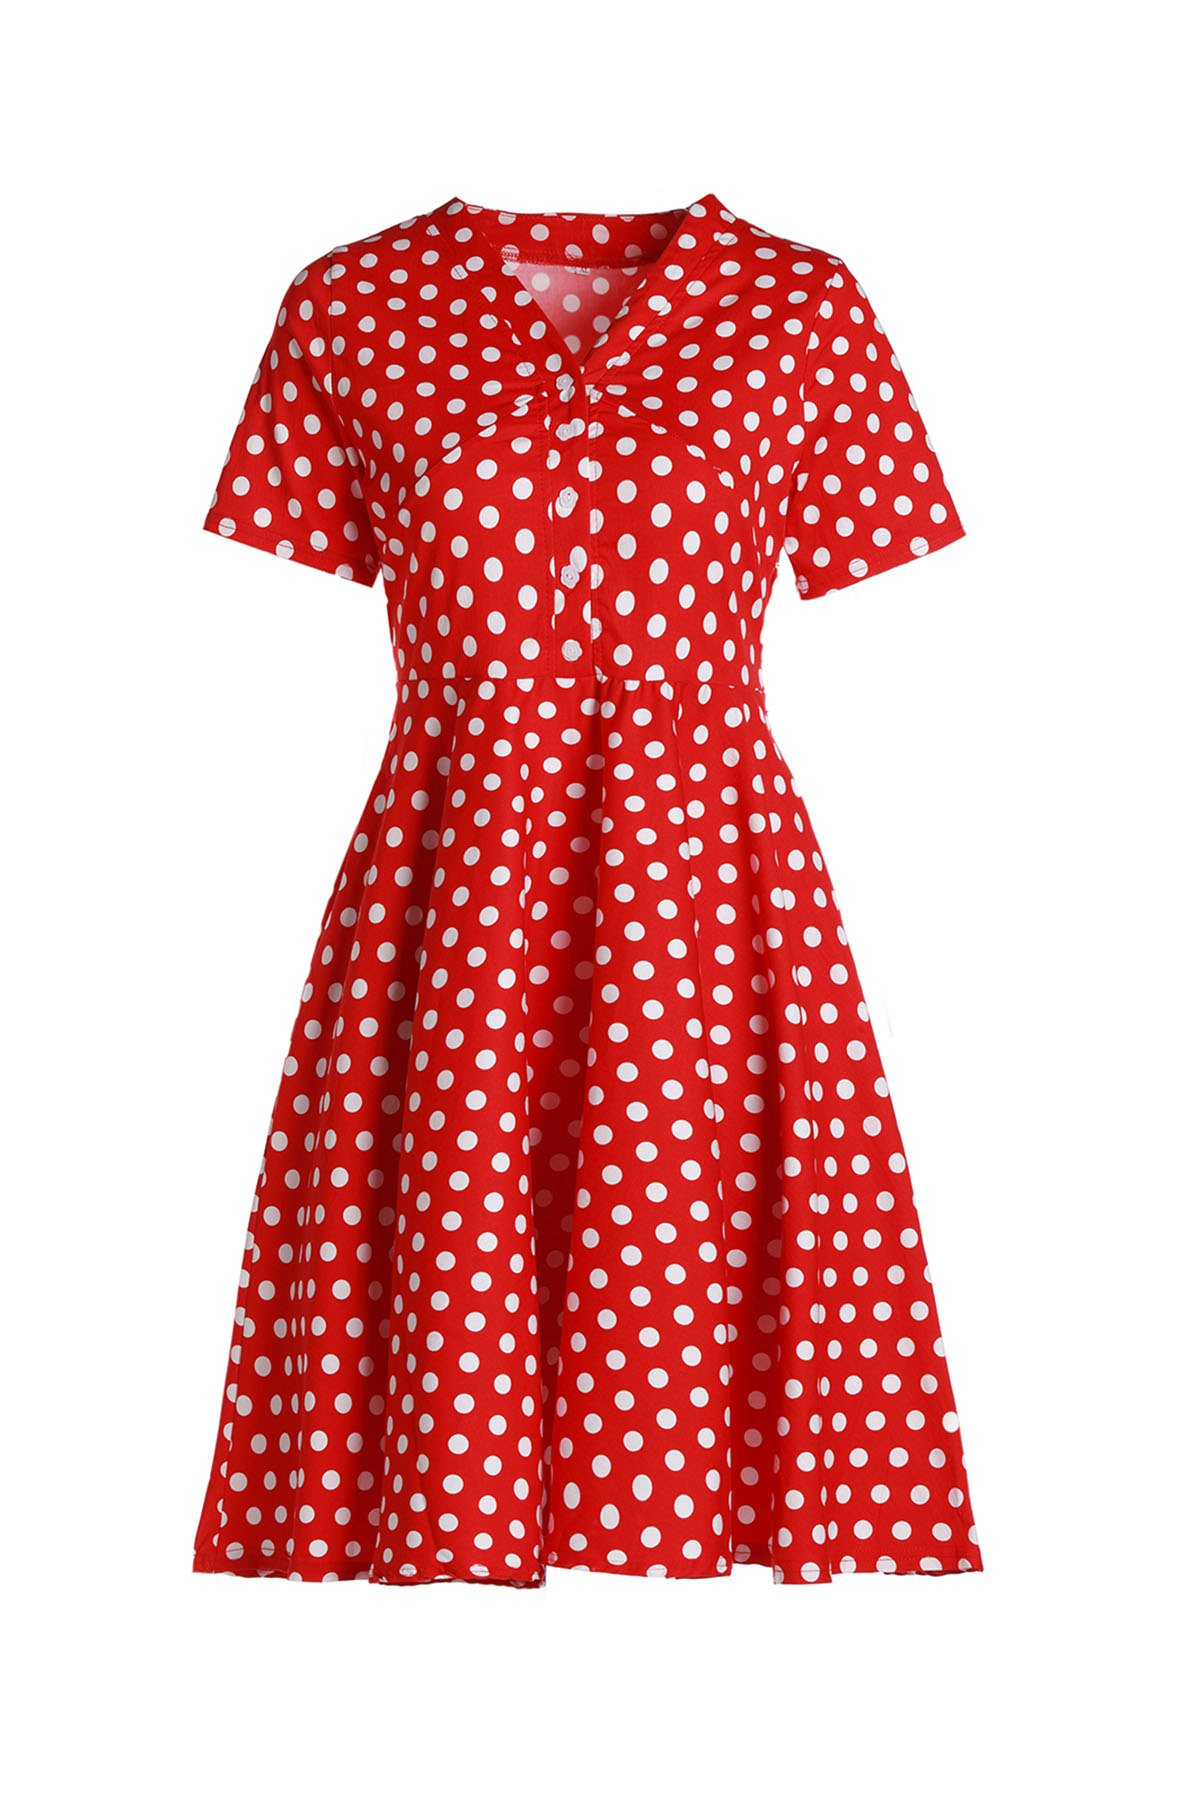 Sweet V-Neck Polka Dot Printed Flare Midi Dress For Women - RED L